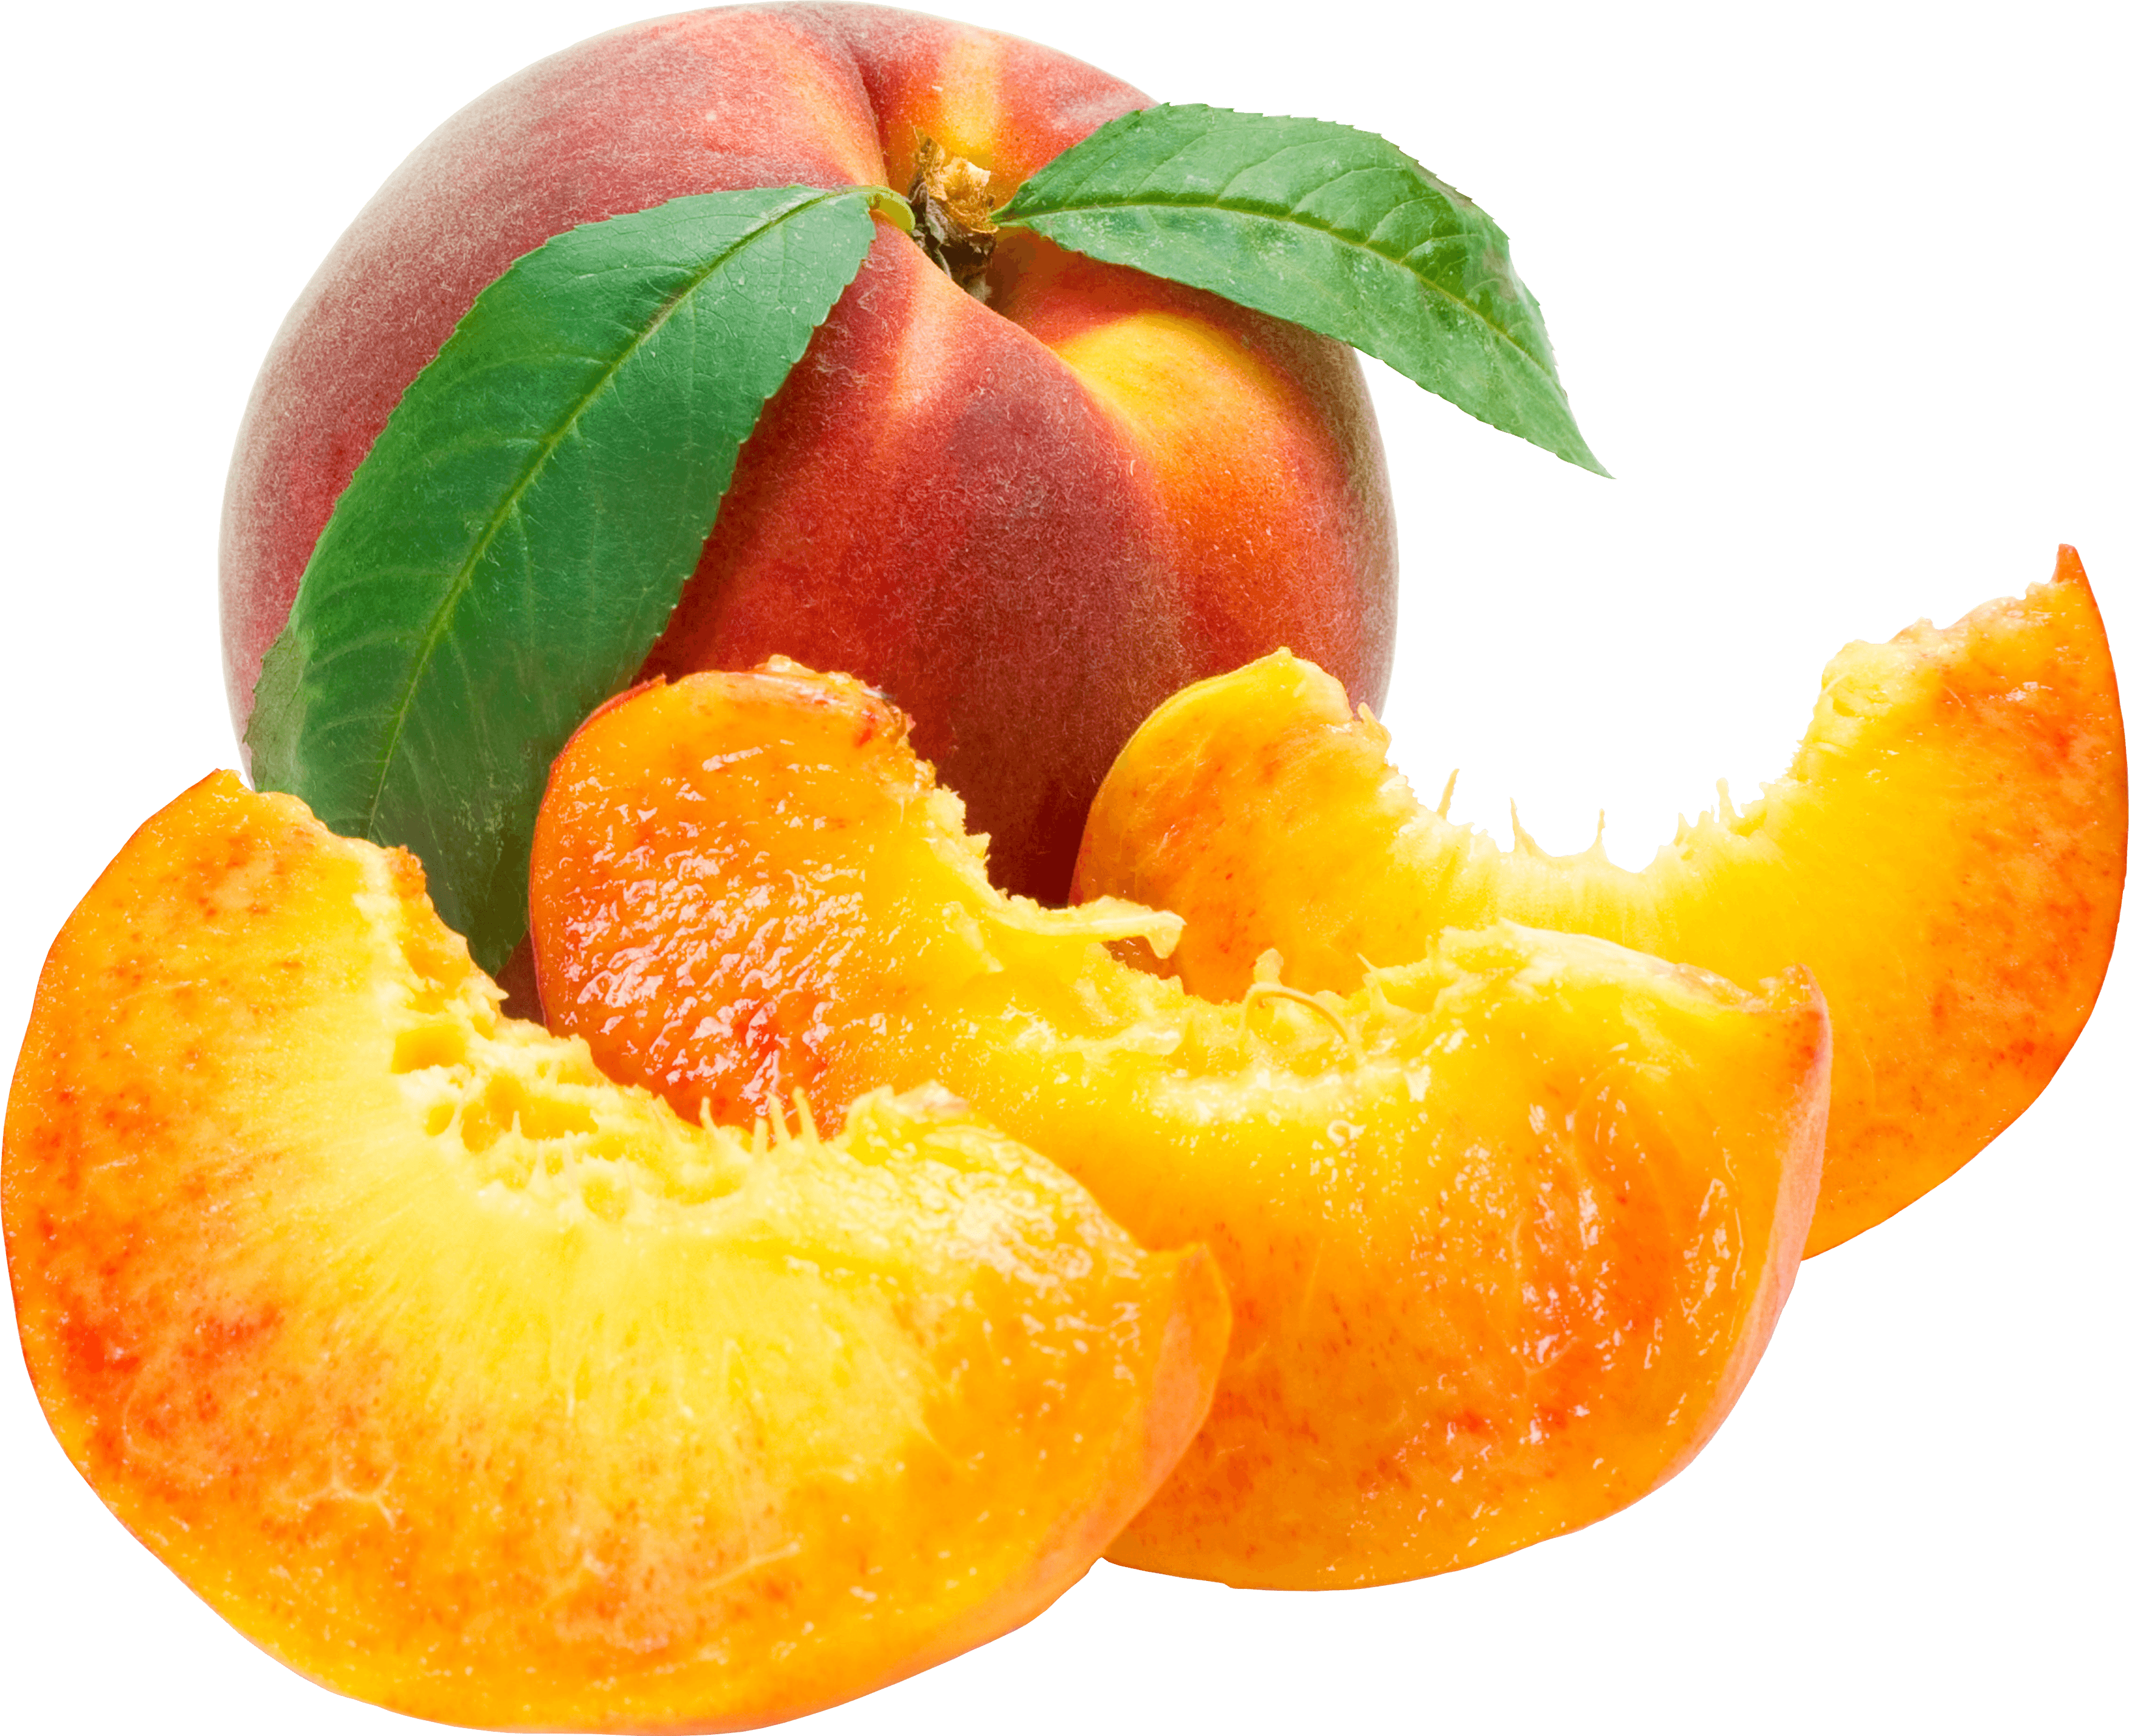 peach download sliced peaches png image png image pngimg #34562